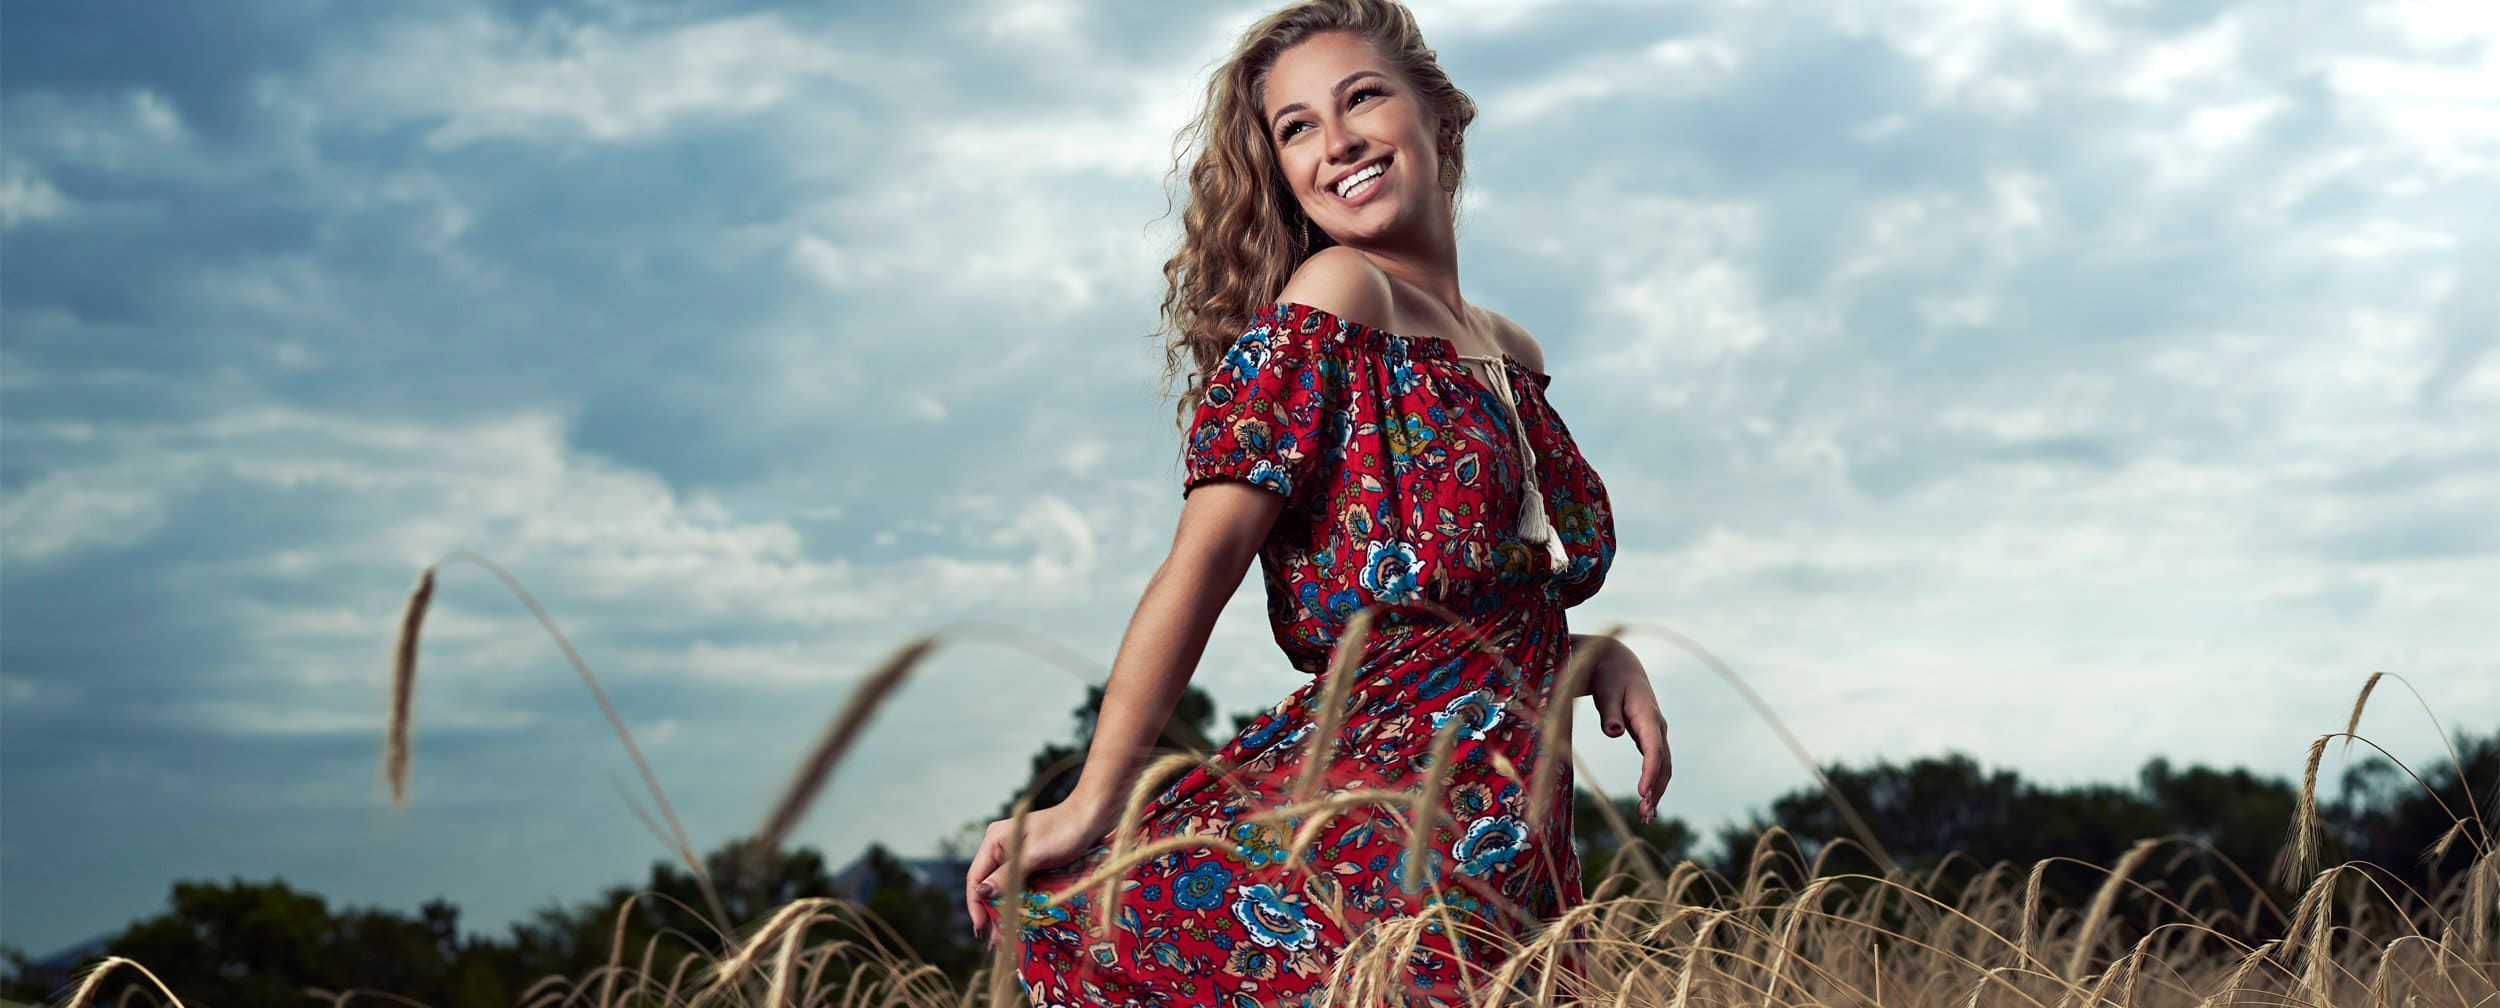 Dallas Girls Senior Portraits fashion photographer in field red dress